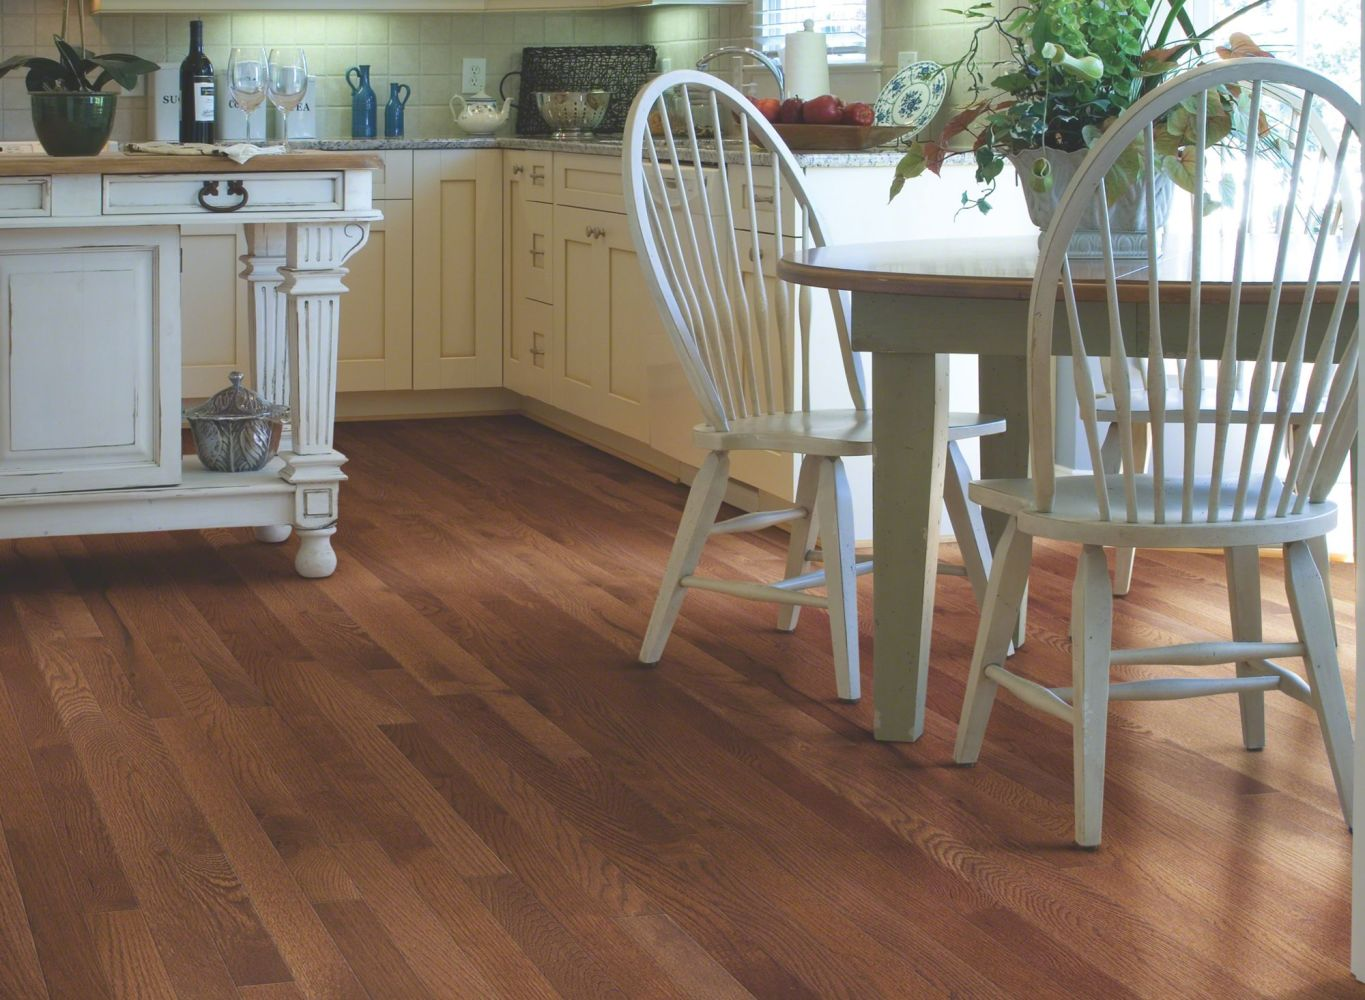 Shaw Floors Nfa Premier Gallery Hardwood Edenwild 3.25 Saddle 00401_VH030